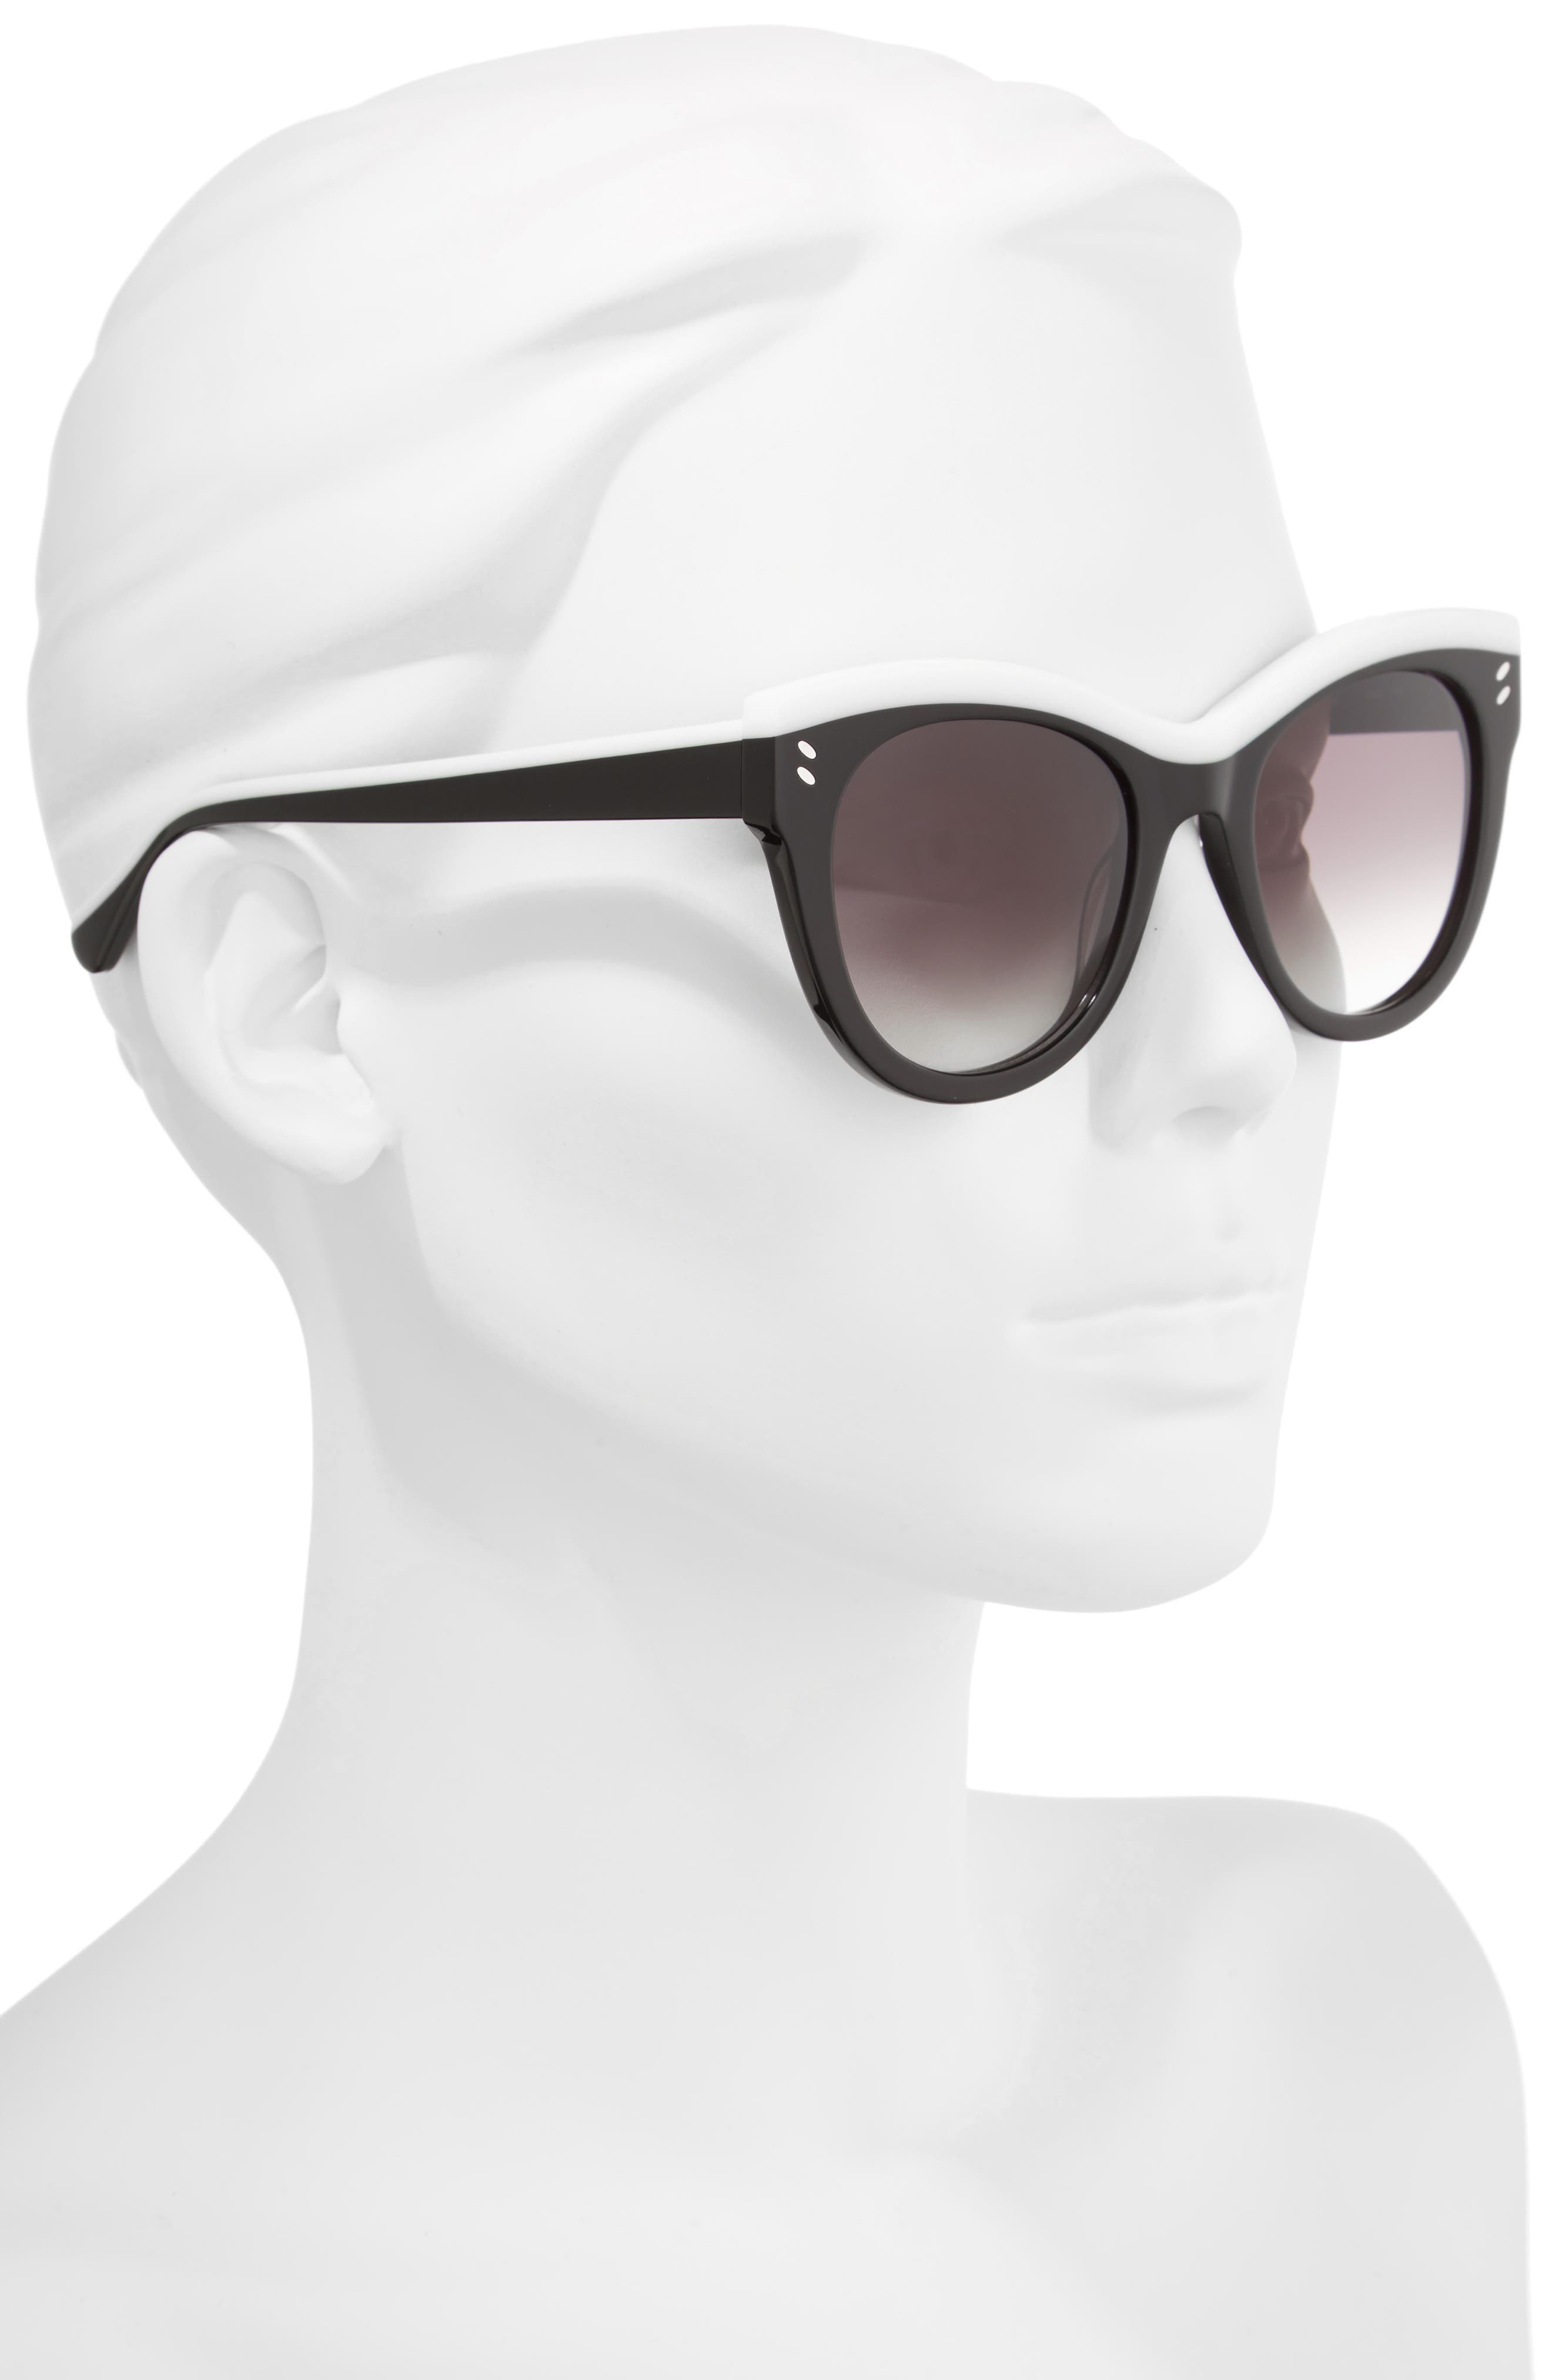 51mm Cat Eye Sunglasses,                             Alternate thumbnail 2, color,                             001